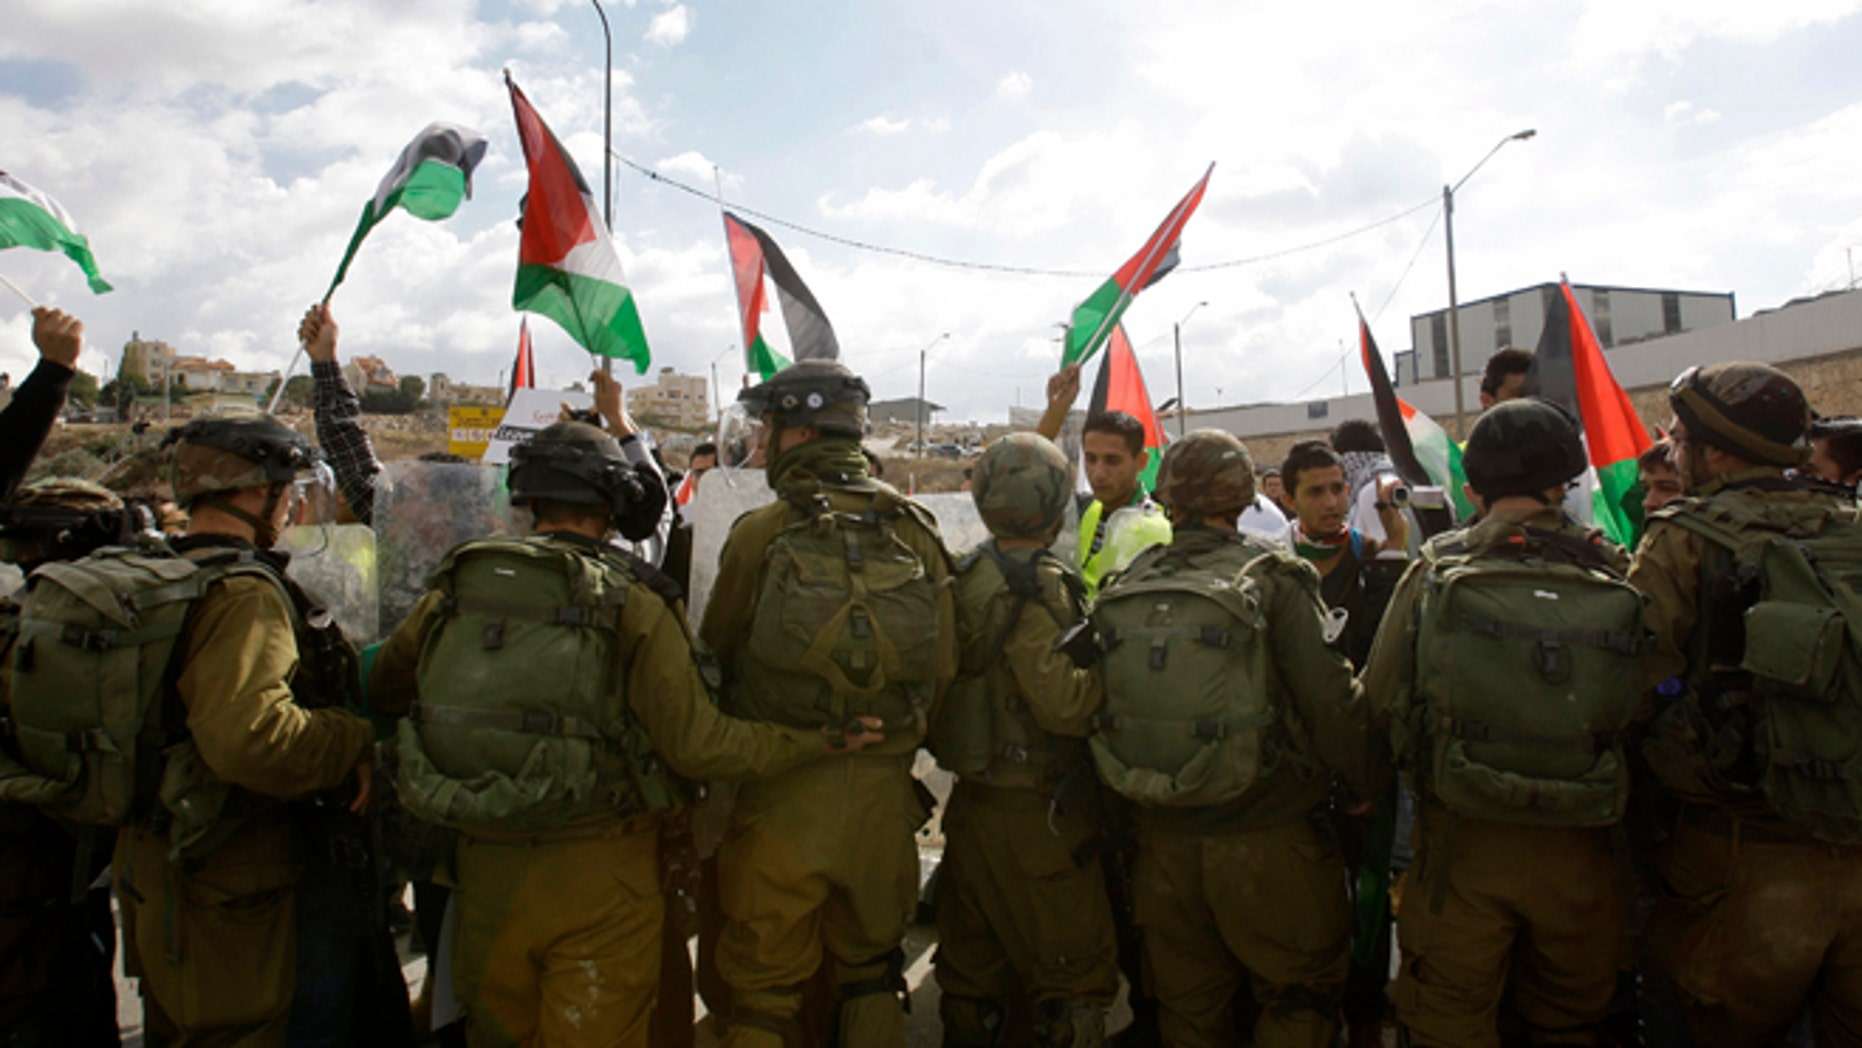 Nov. 14, 2012: Palestinians, foreign and Israeli activists stand in front of Israeli soldiers as they try to block a road near the West Bank town of Bethlehem, as part of a demonstration in support of the Palestinian statehood petition at the U.N. General Assembly.